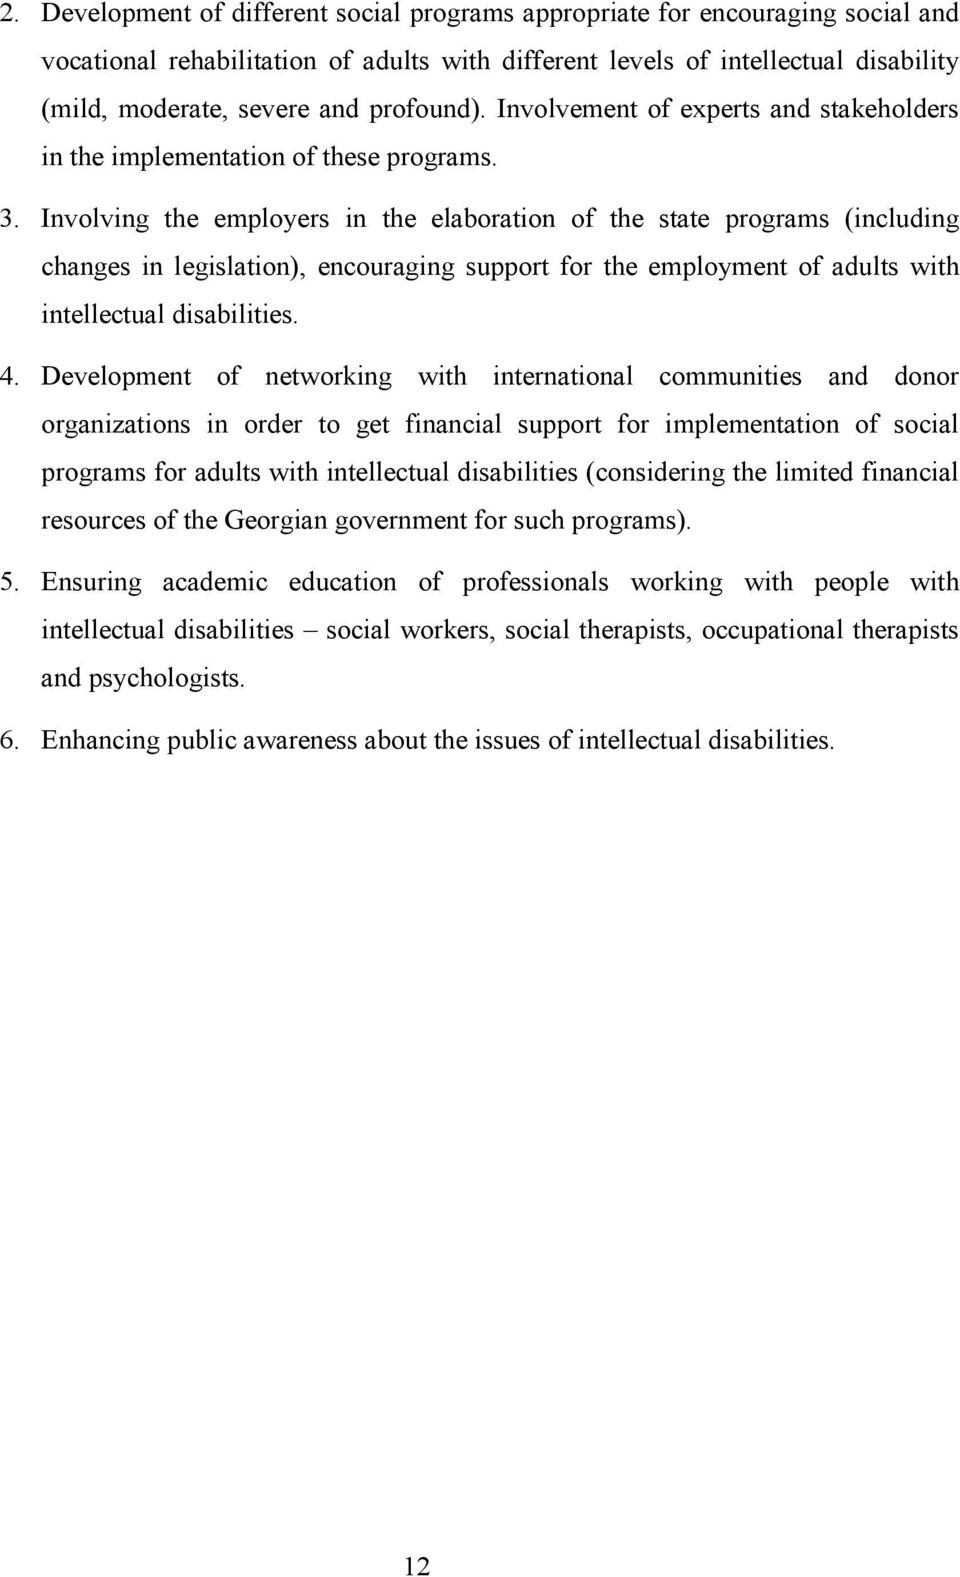 Involving the employers in the elaboration of the state programs (including changes in legislation), encouraging support for the employment of adults with intellectual disabilities. 4.